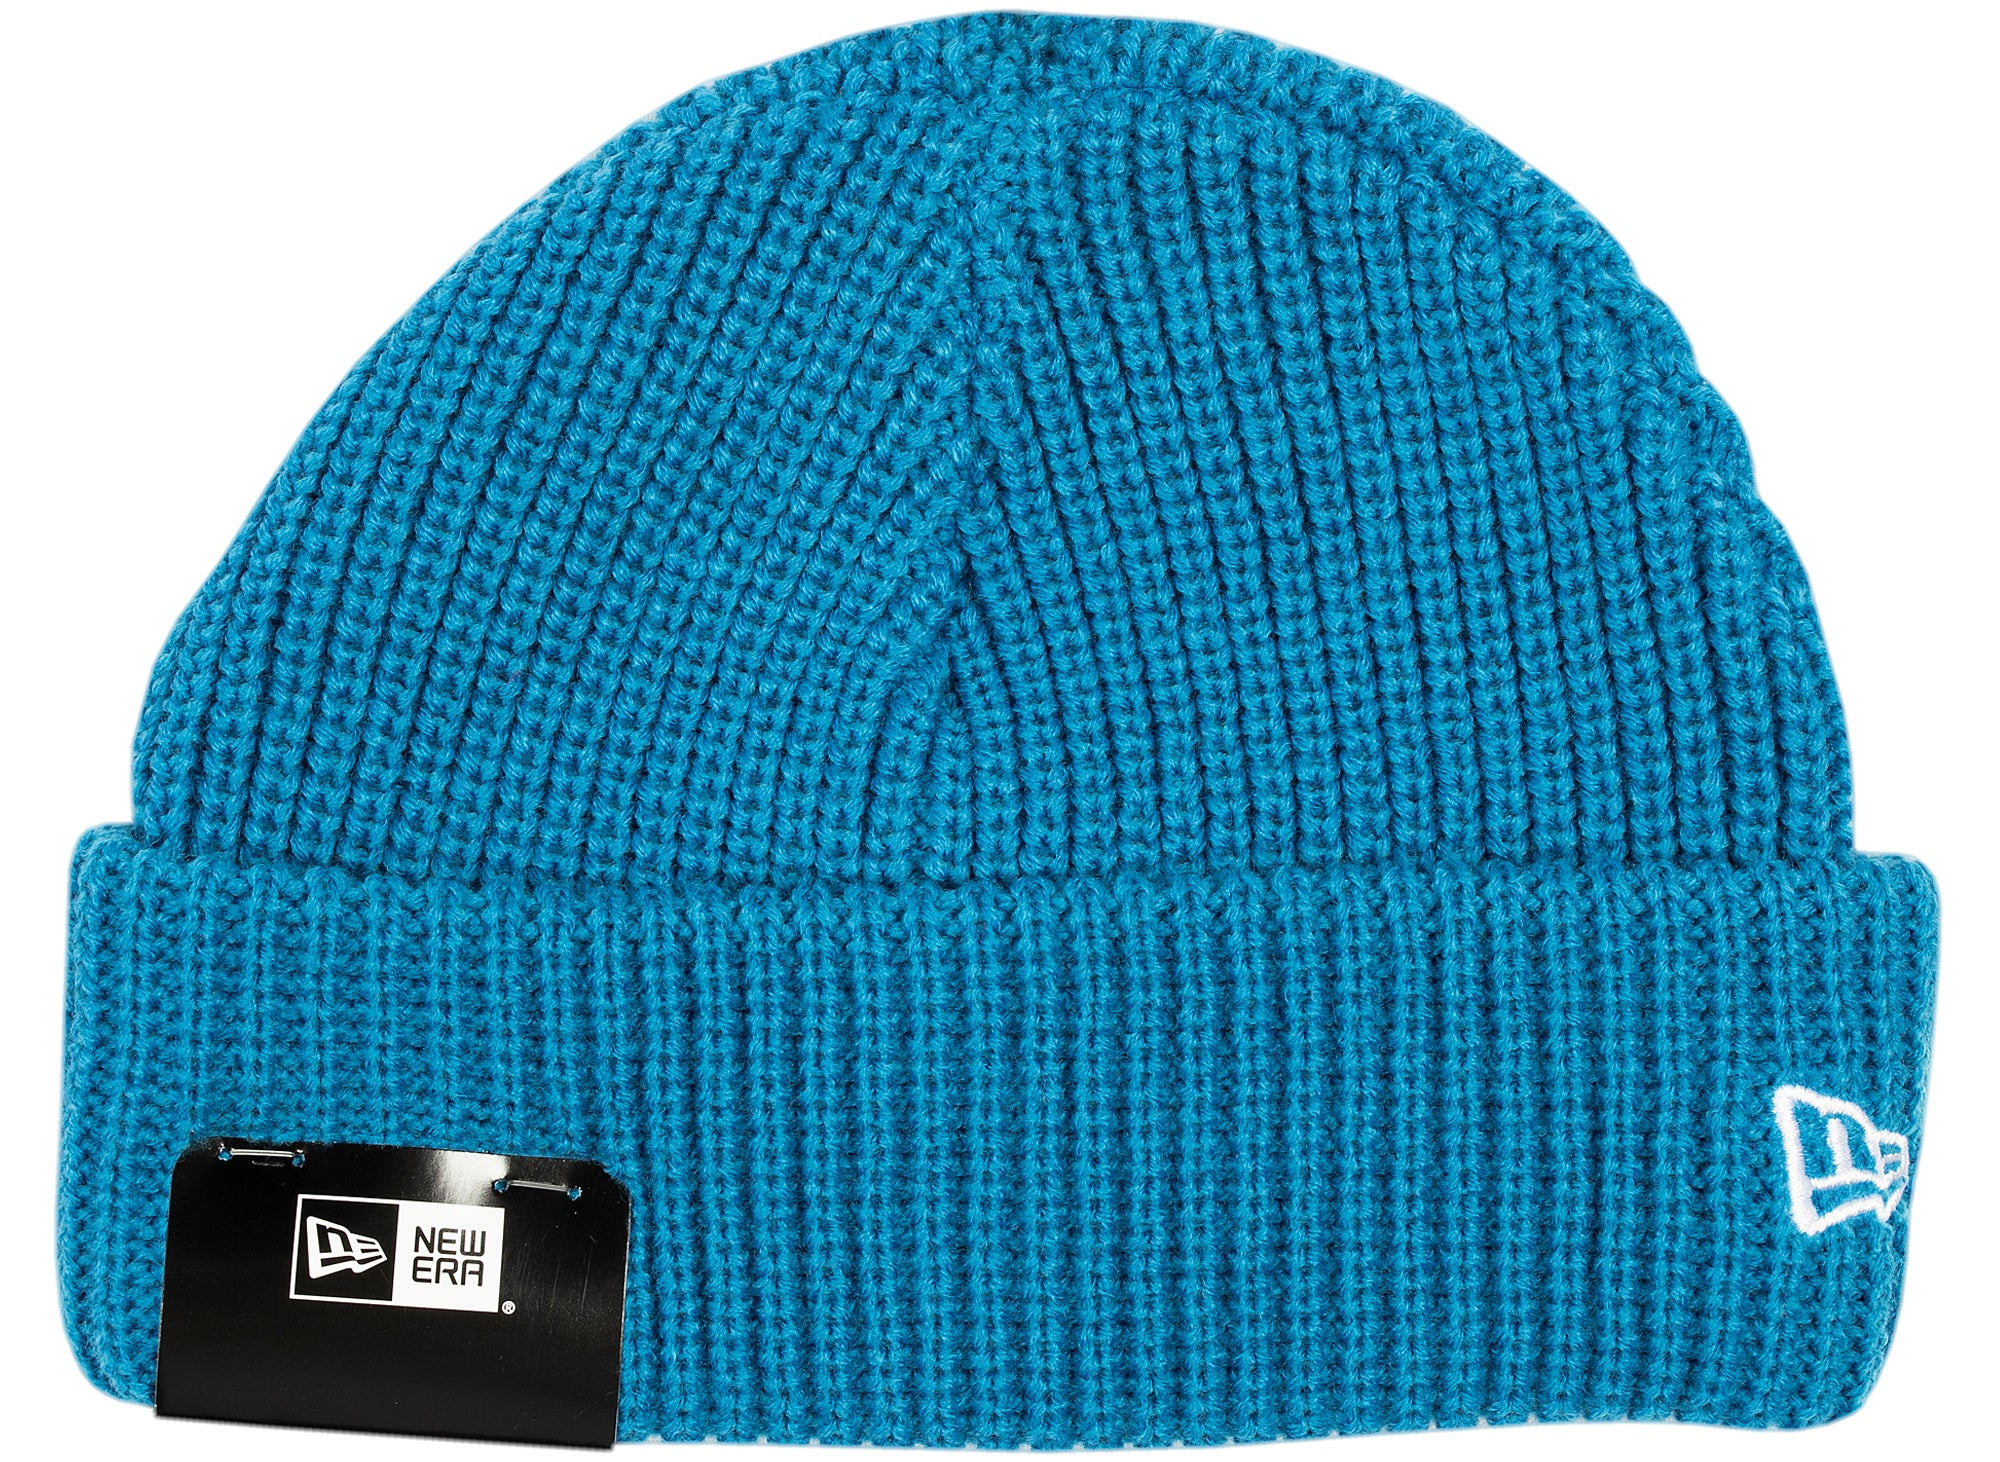 New Era Knit Skully Cap in Blue xld